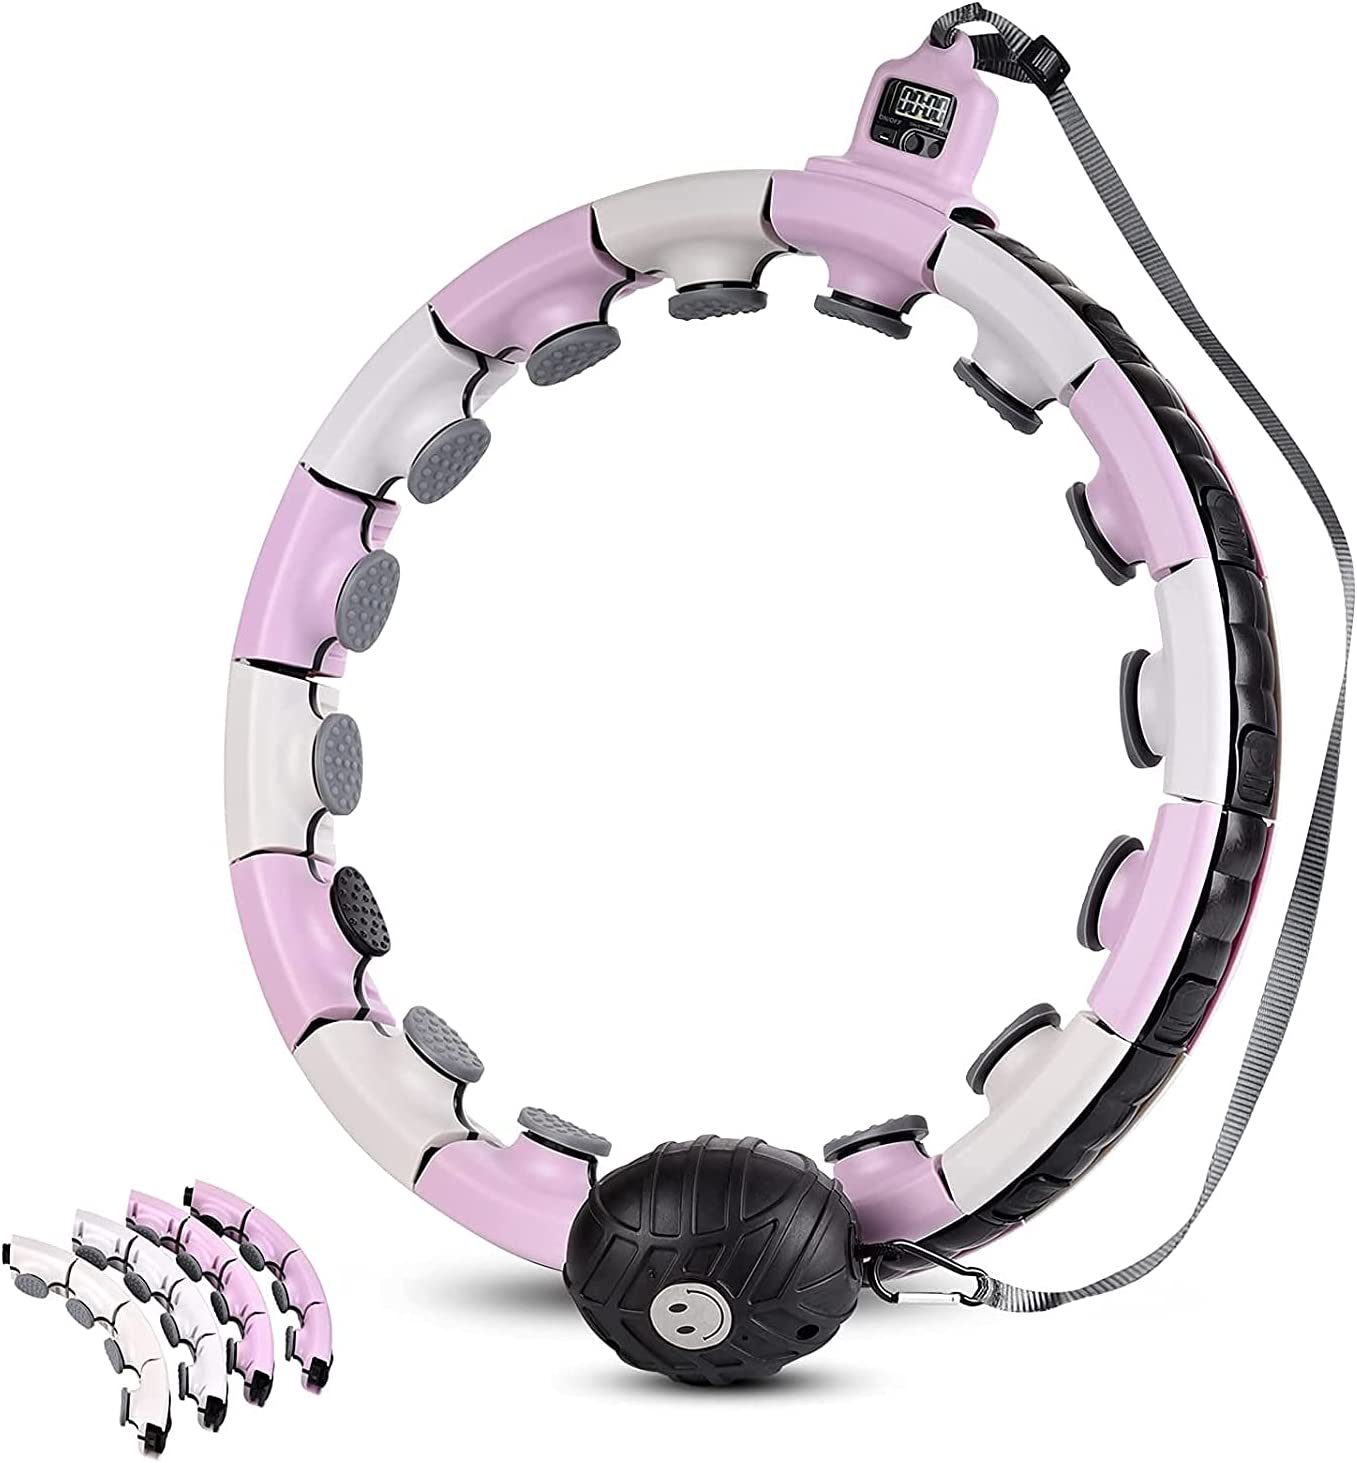 Janusoma High quality Weighted Hoola Hoops with Smart Hoop Baltimore Mall Adjustable